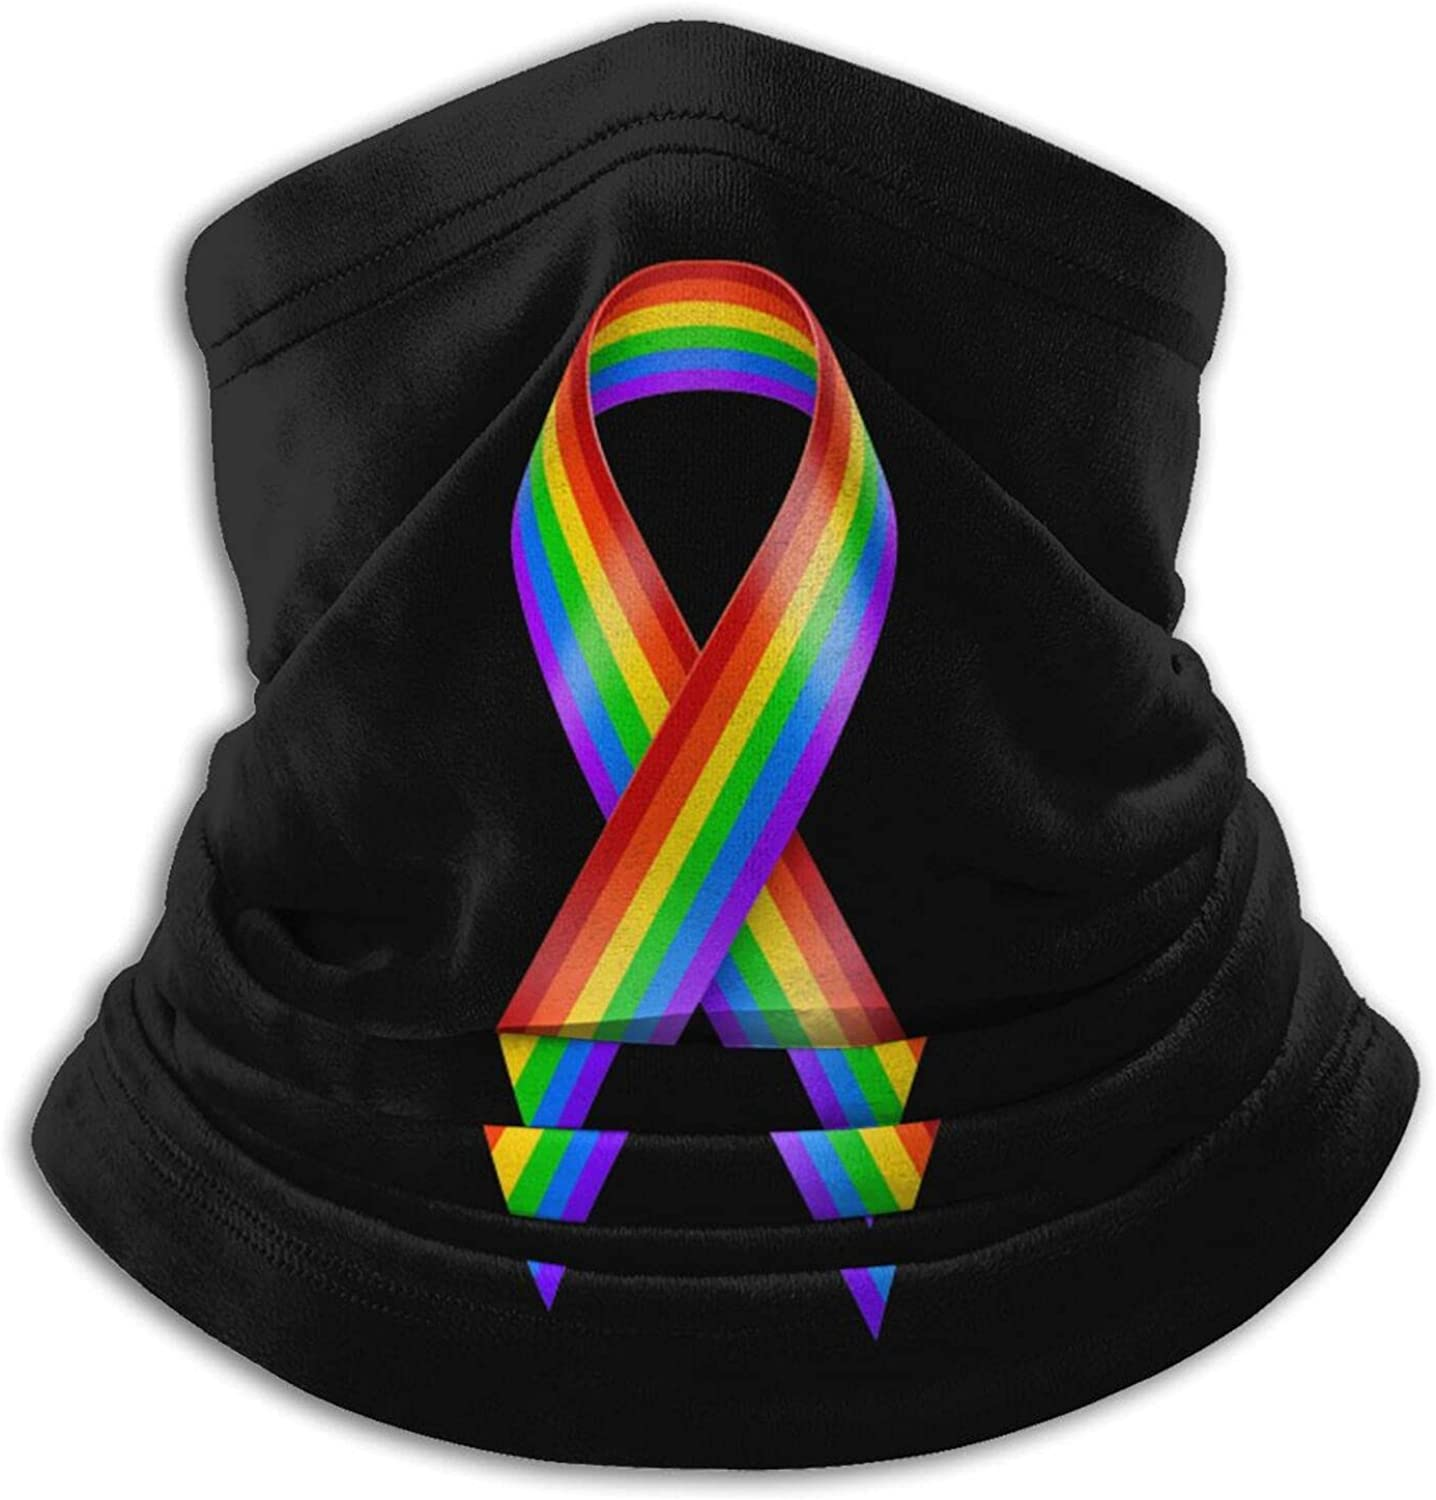 All cancer awareness rainbow ribbon unisex winter neck gaiter face cover mask, windproof balaclava scarf for fishing, running & hiking